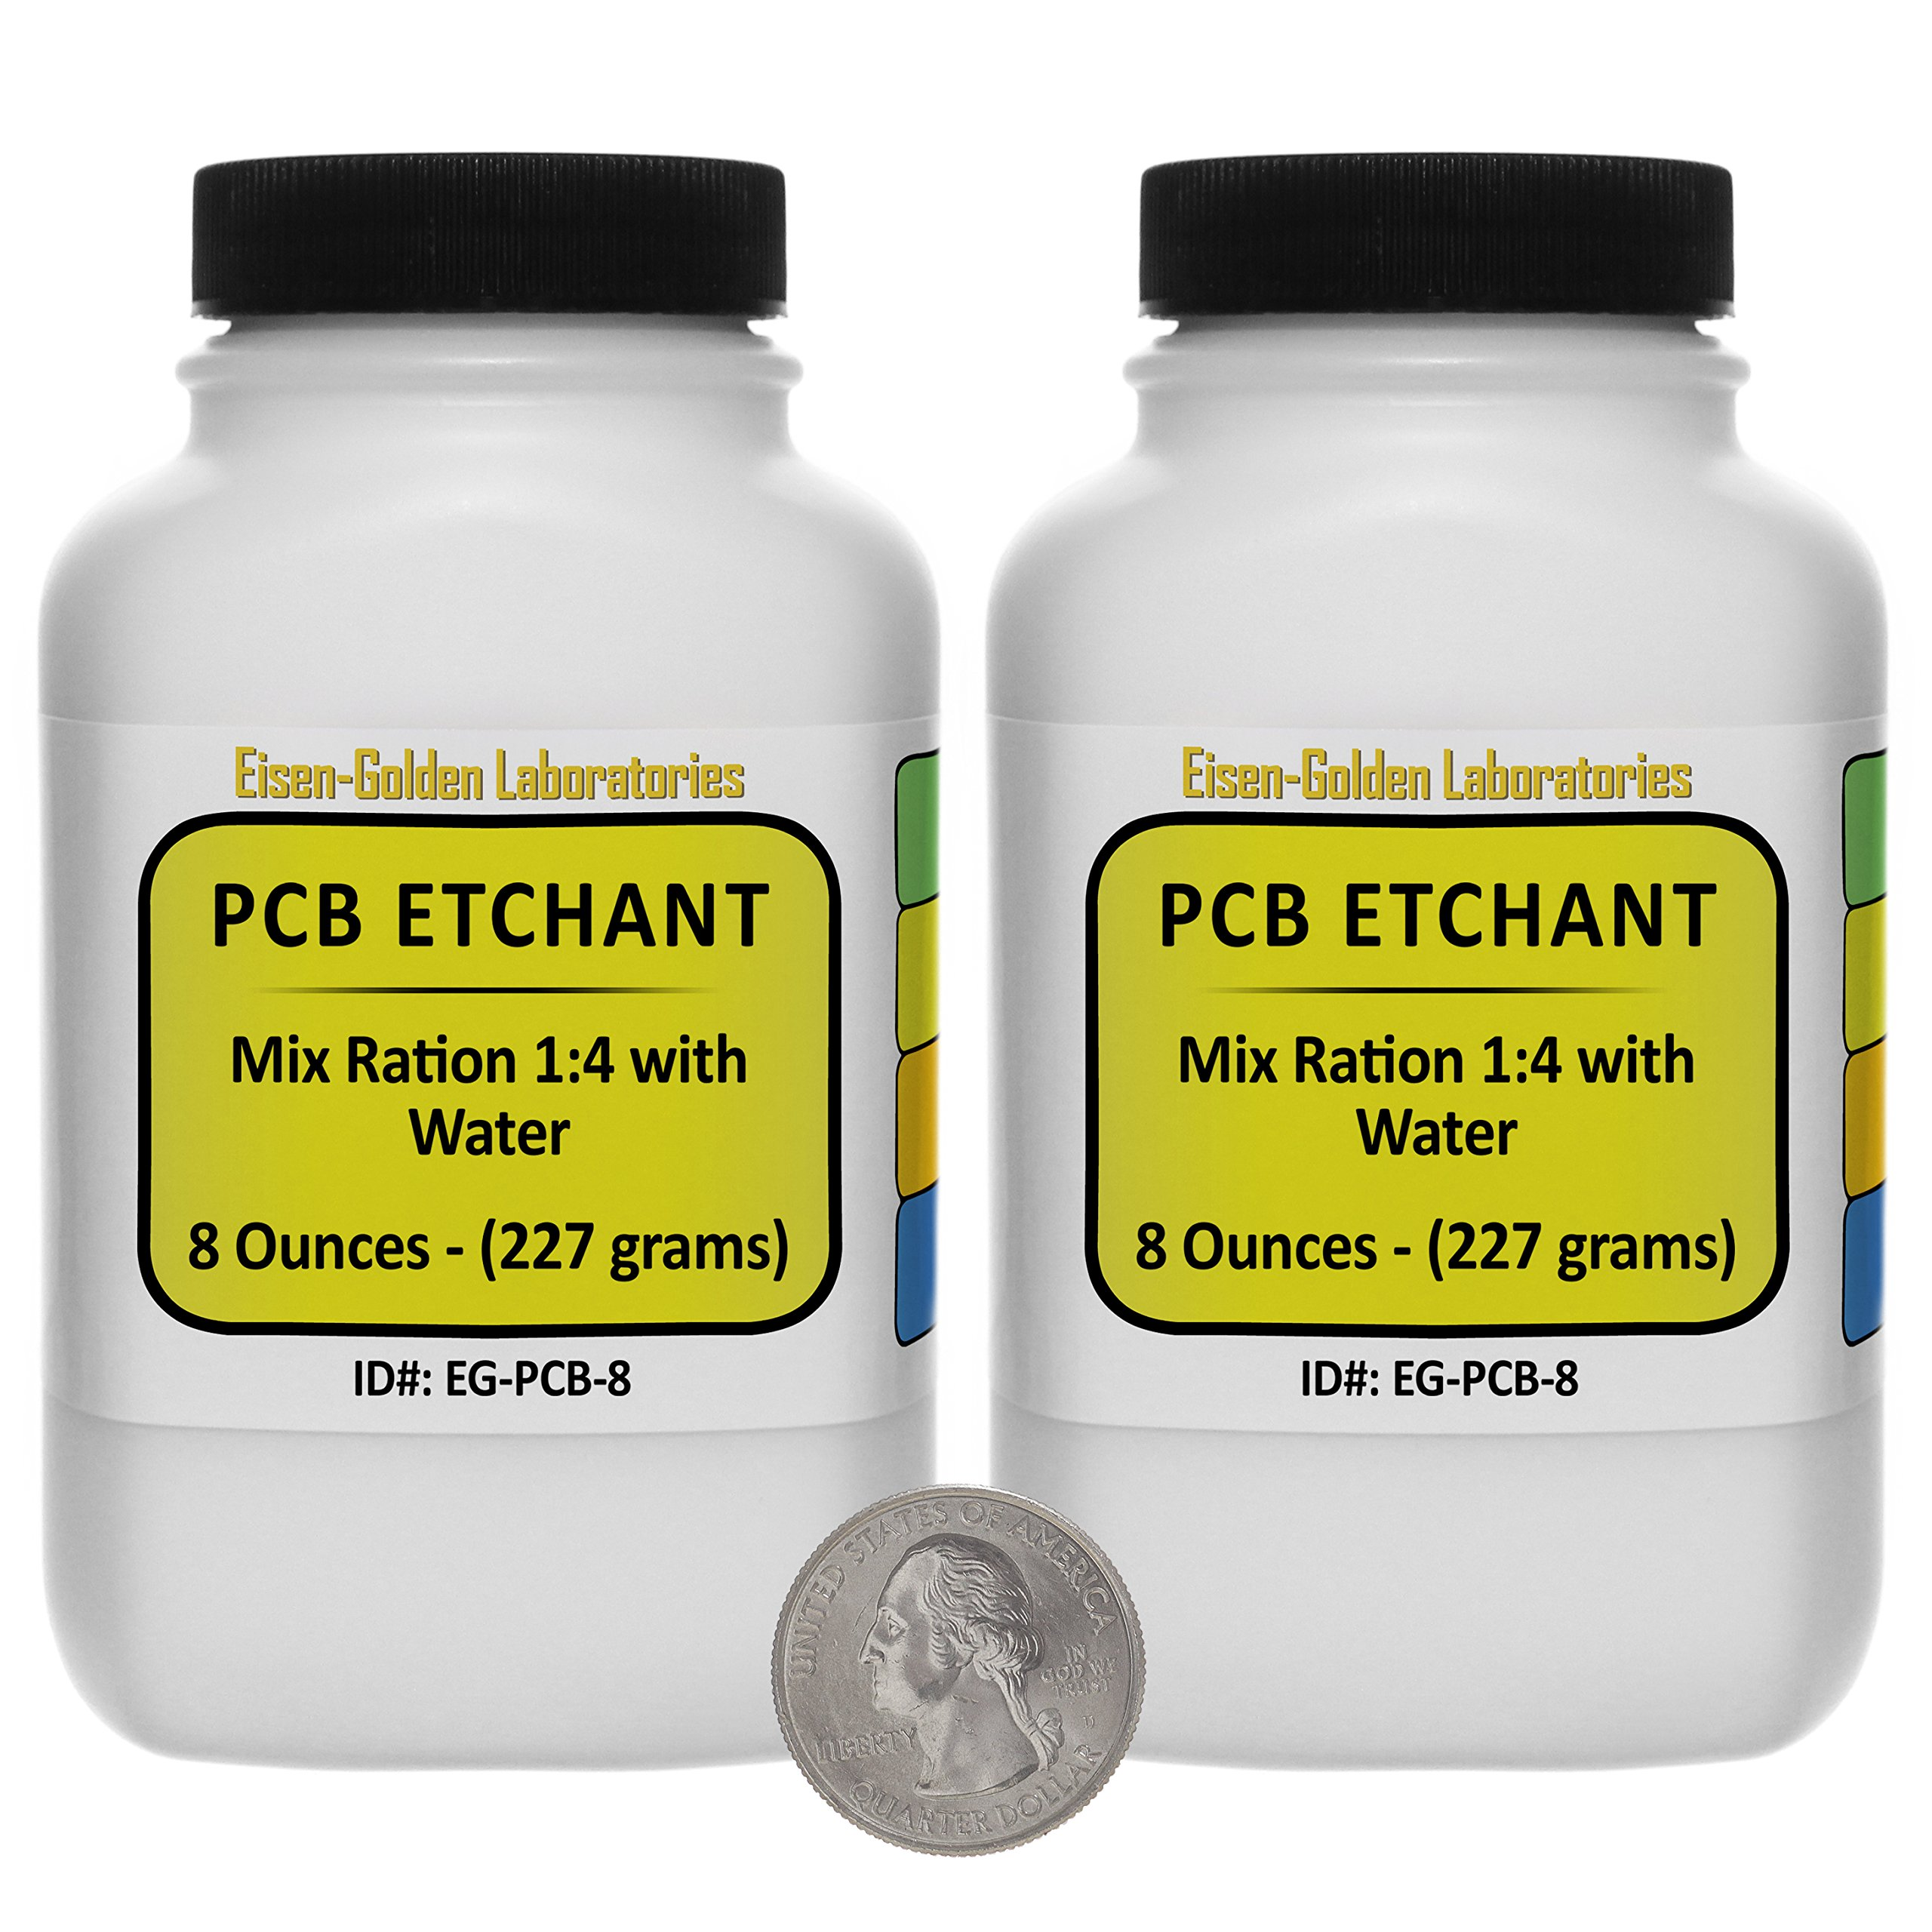 Printed Circuit Board Etchant [PCB] Dry Powder 1 Lb in Two Space-Saver Bottles USA by Eisen-Golden Laboratories